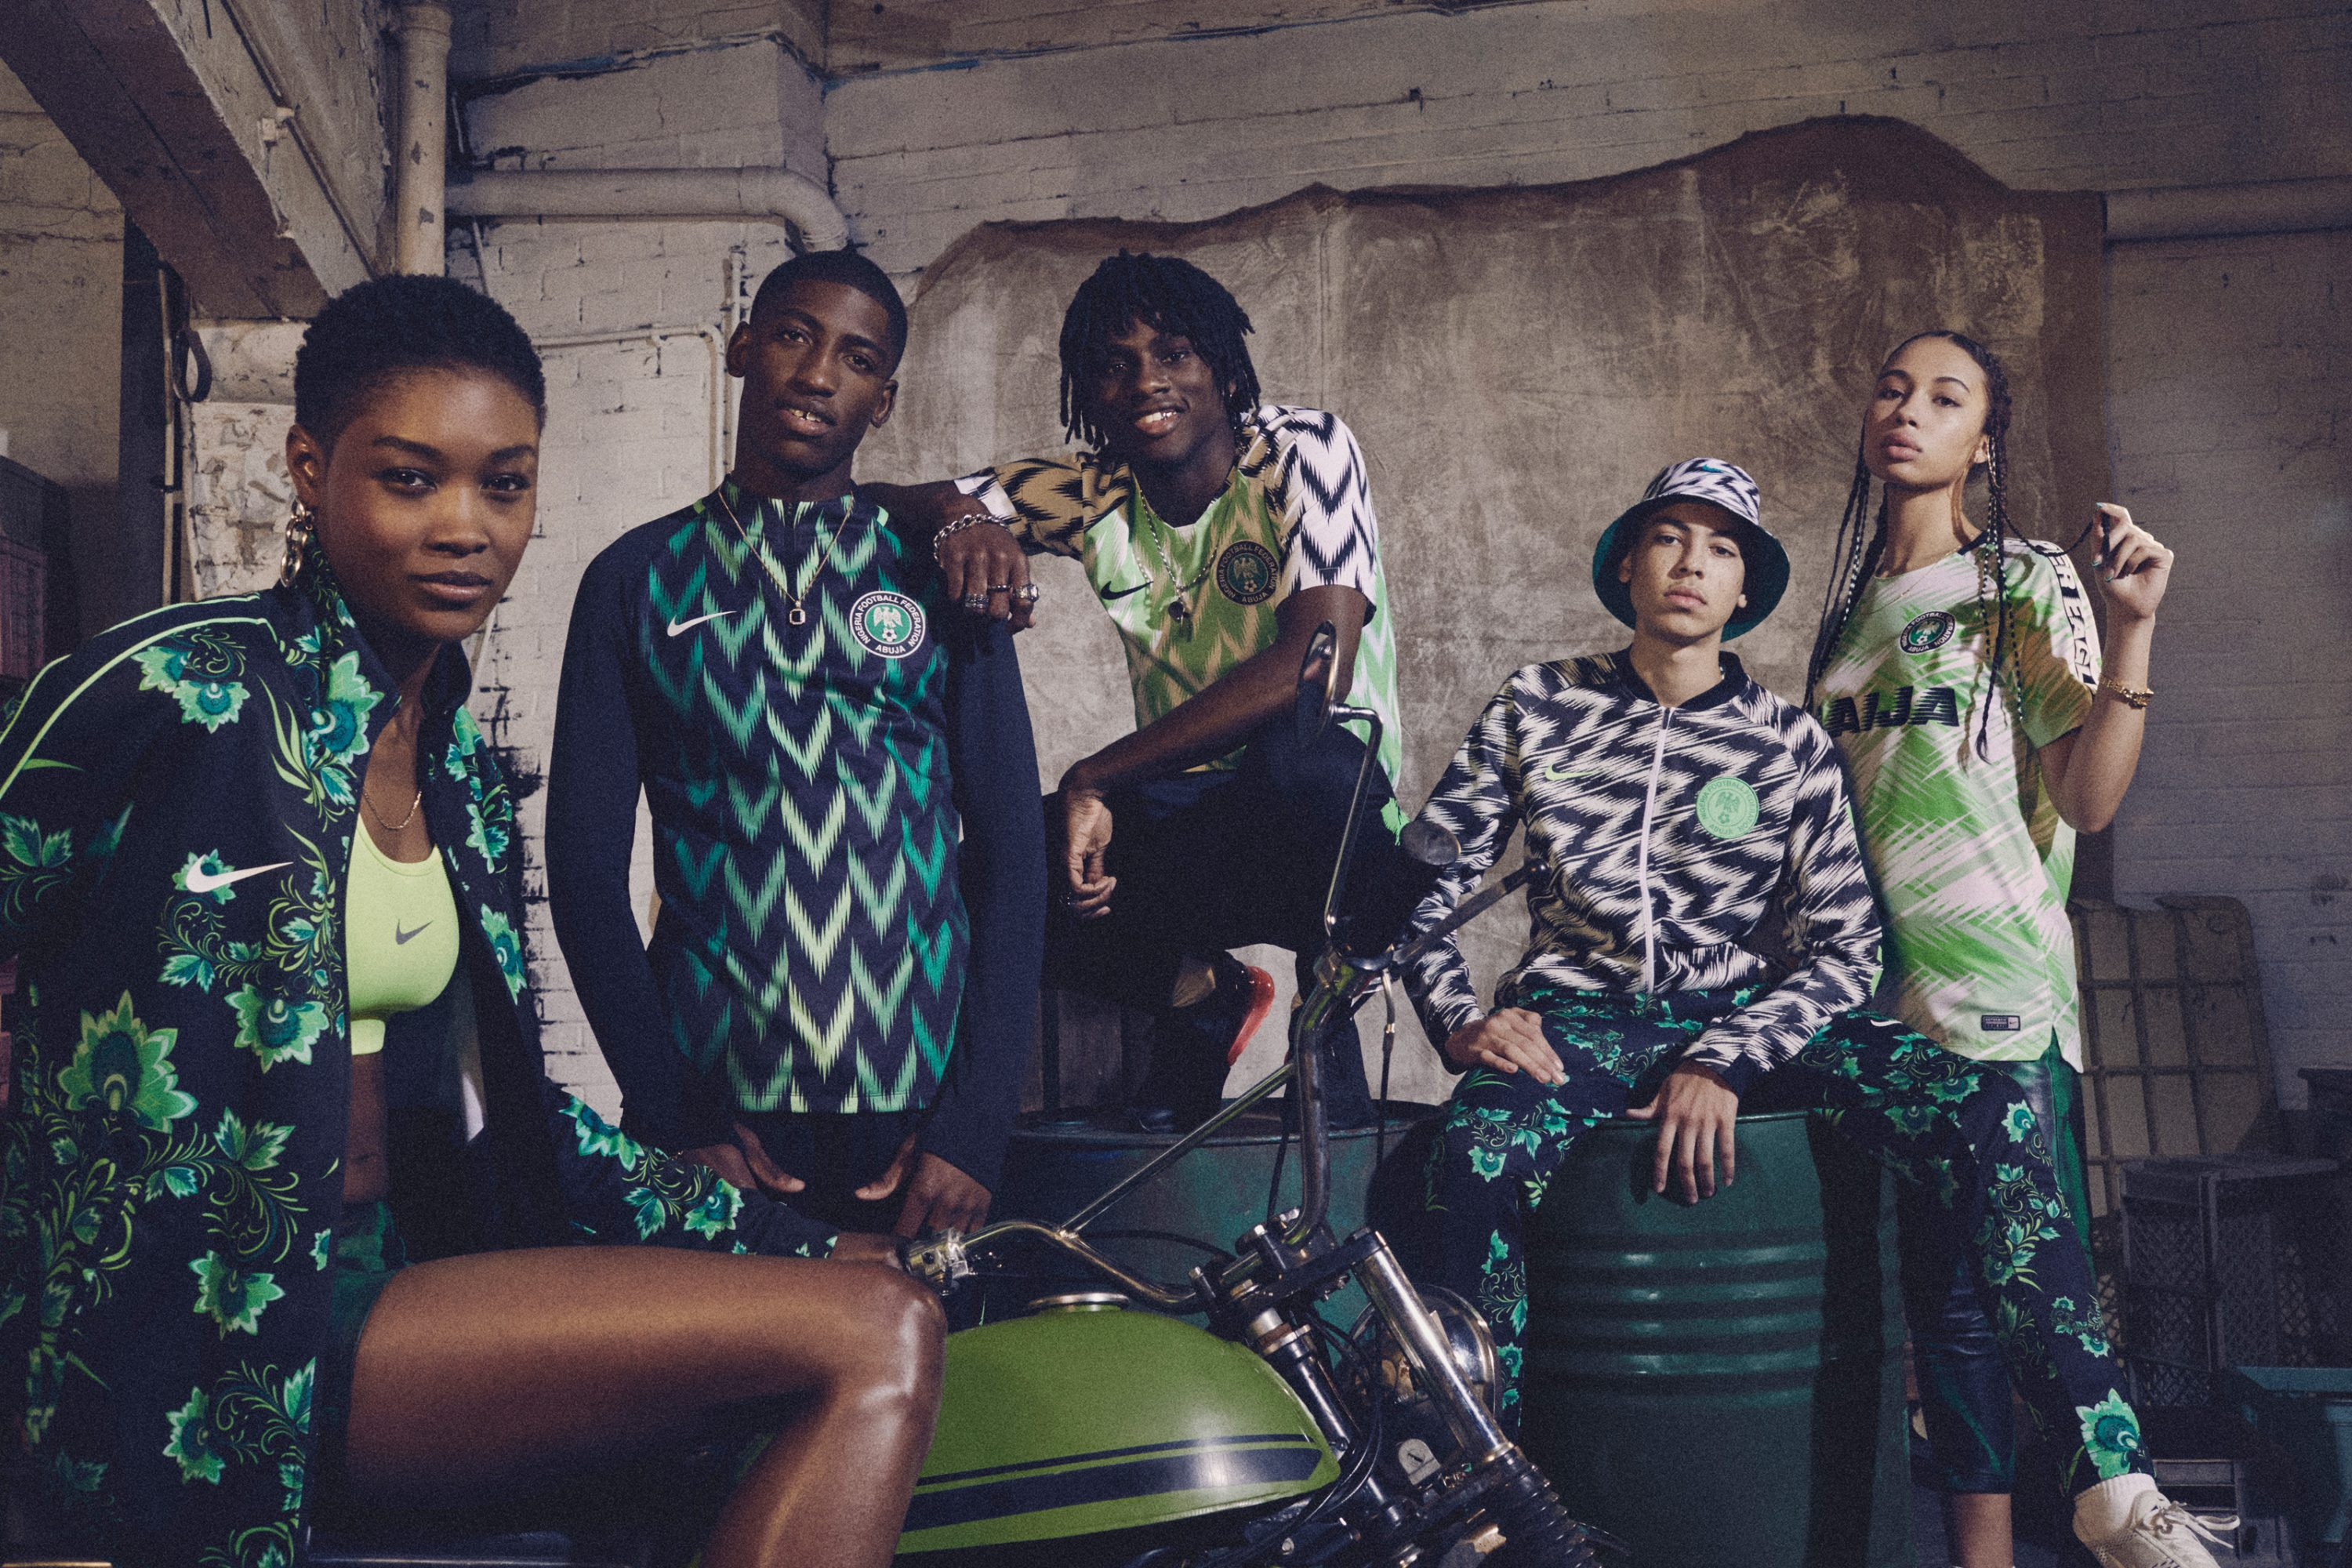 Nike-News-Football-Soccer-Nigeria-National-Team-Kit-4_77368